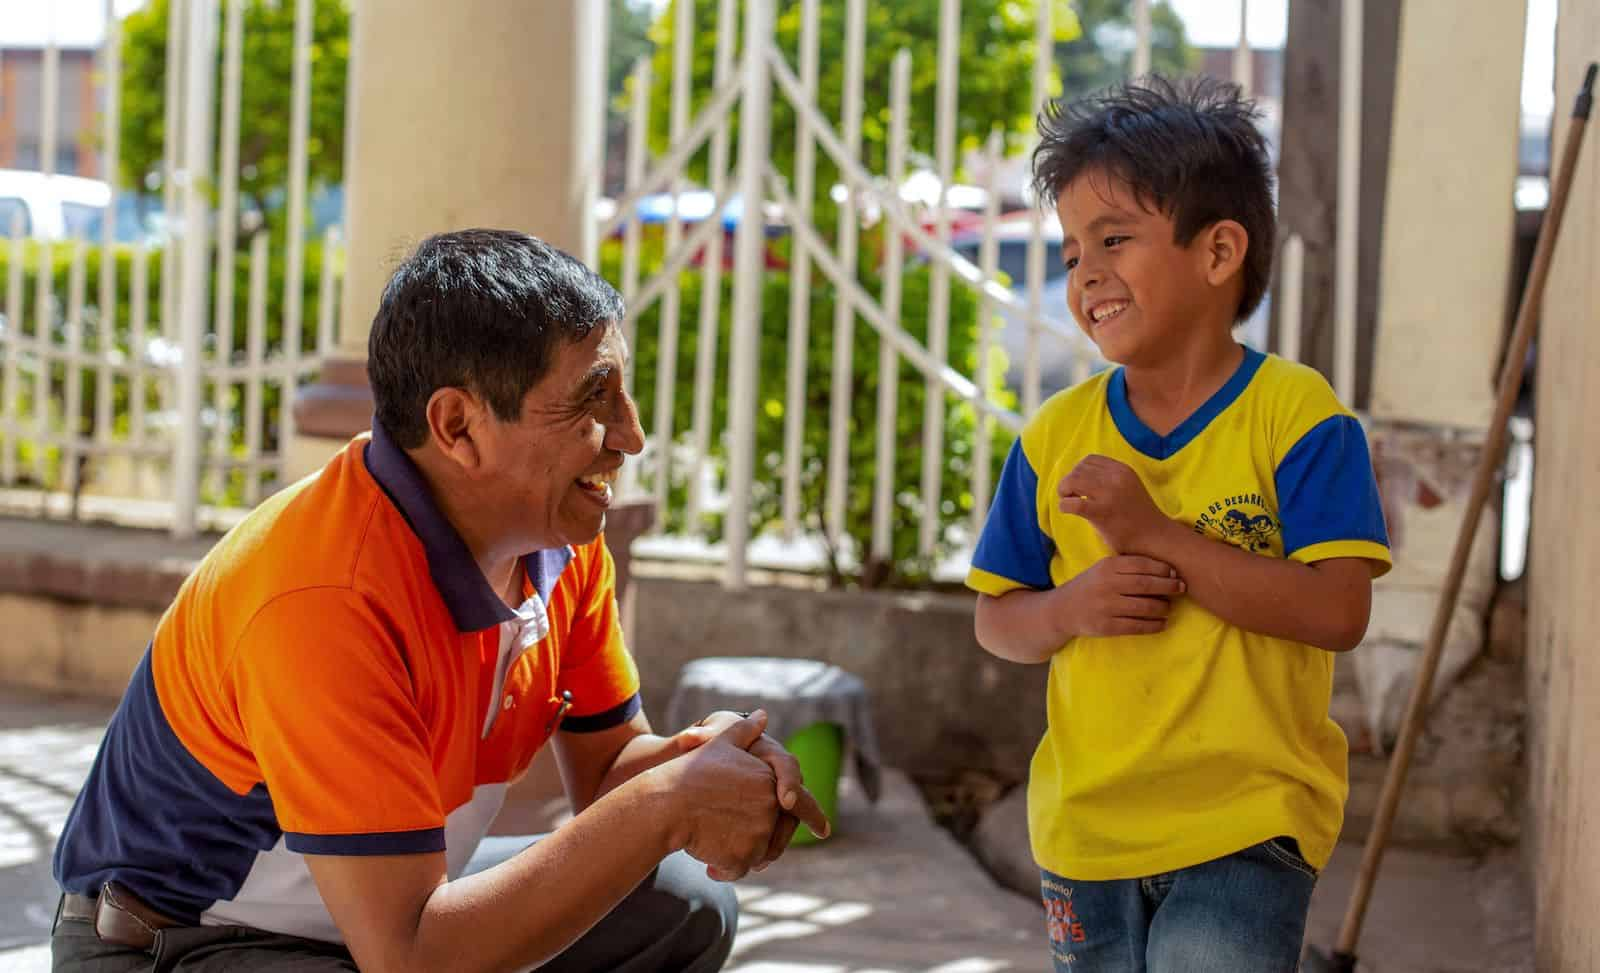 A man in an orange shirt kneels next to a boy in a yellow shirt, talking to him in.